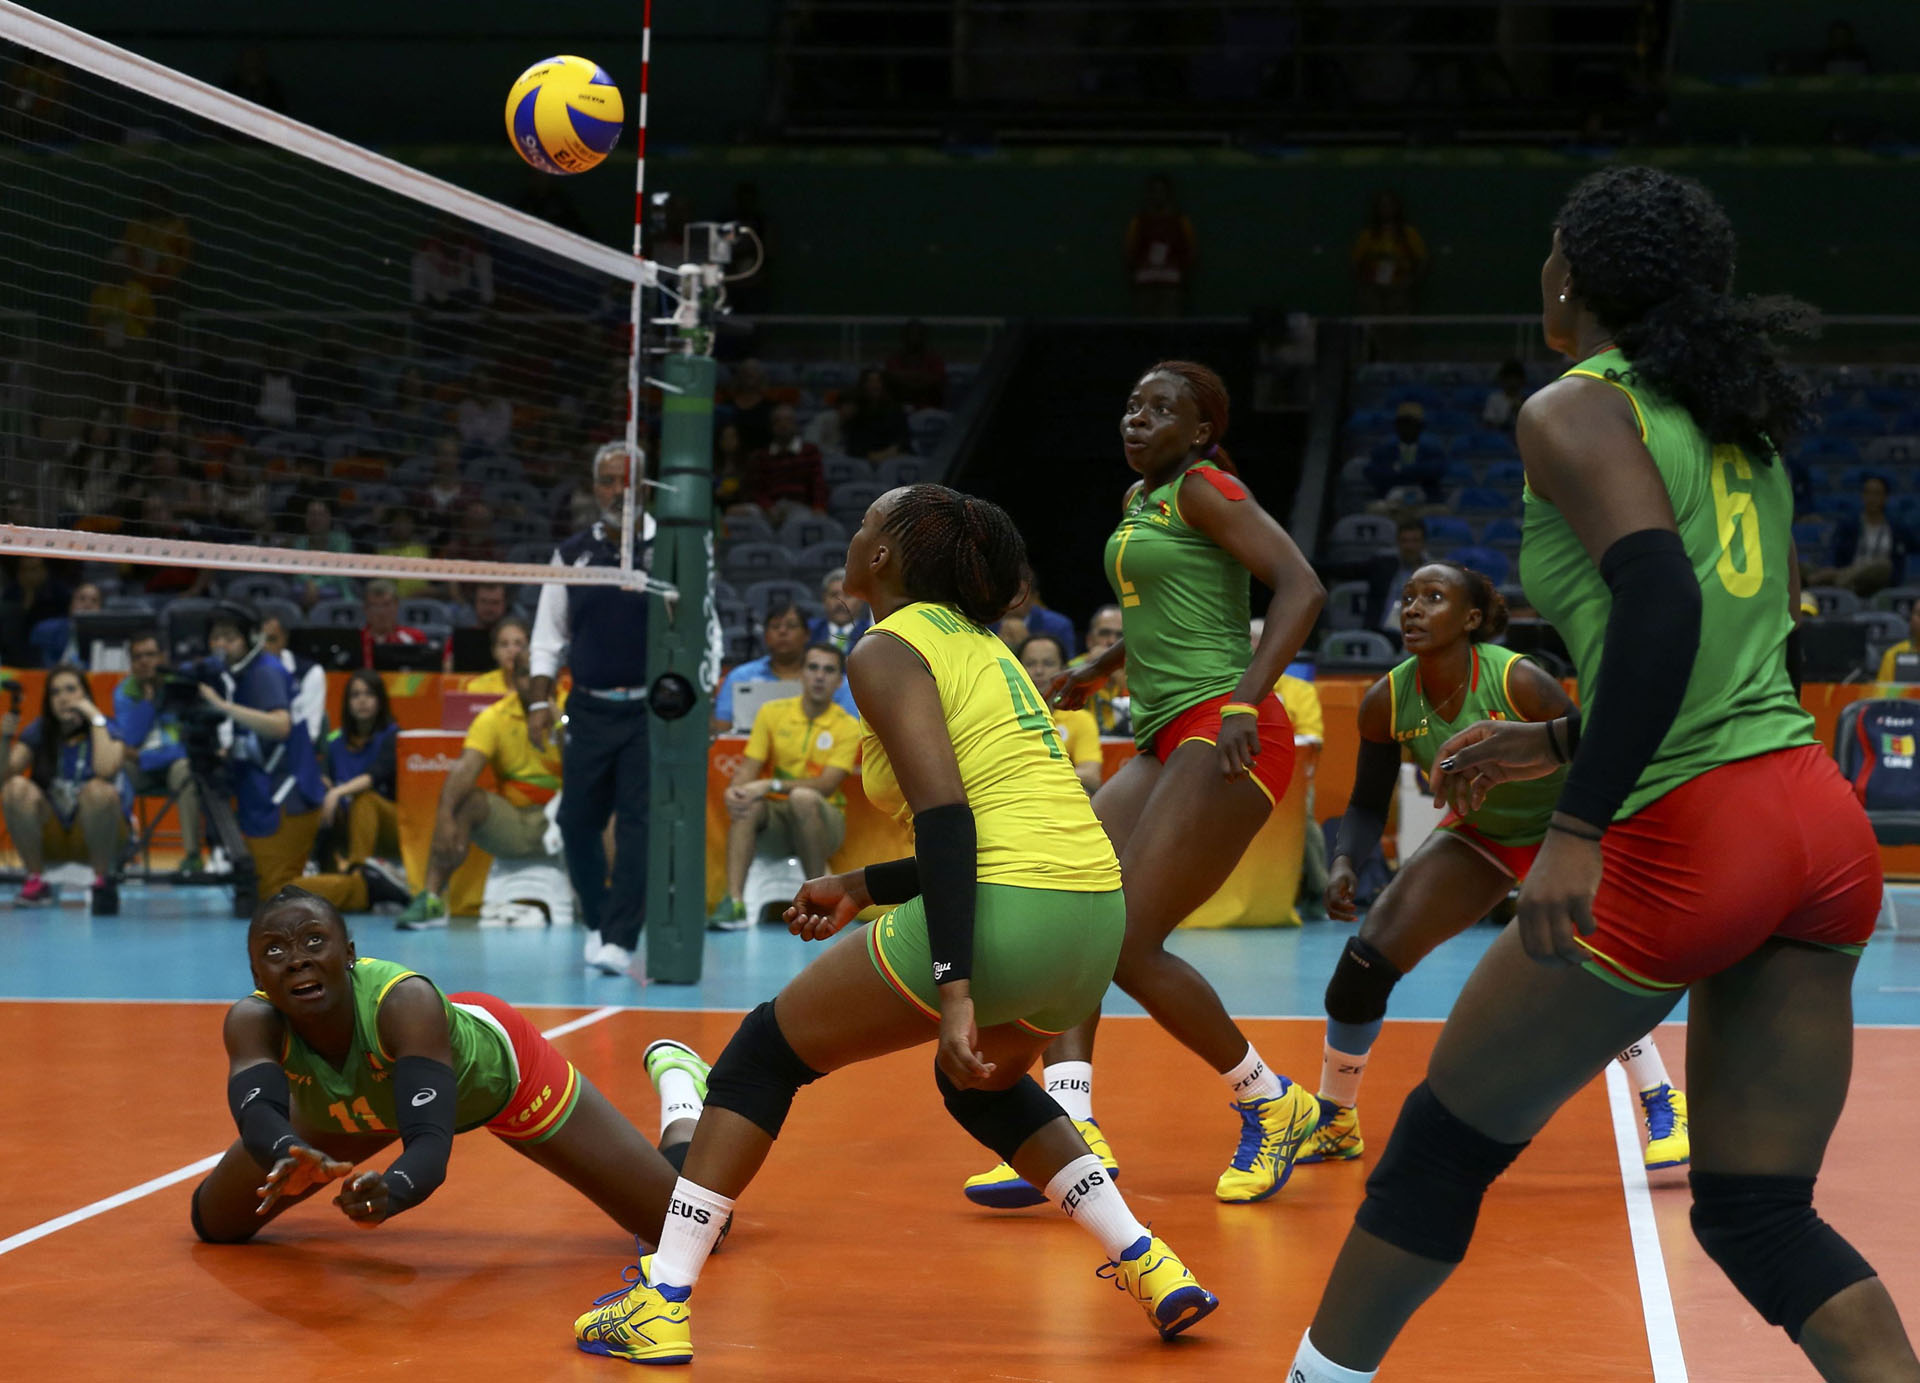 Volleyball - Women's Preliminary - Pool A Russia v Cameroon